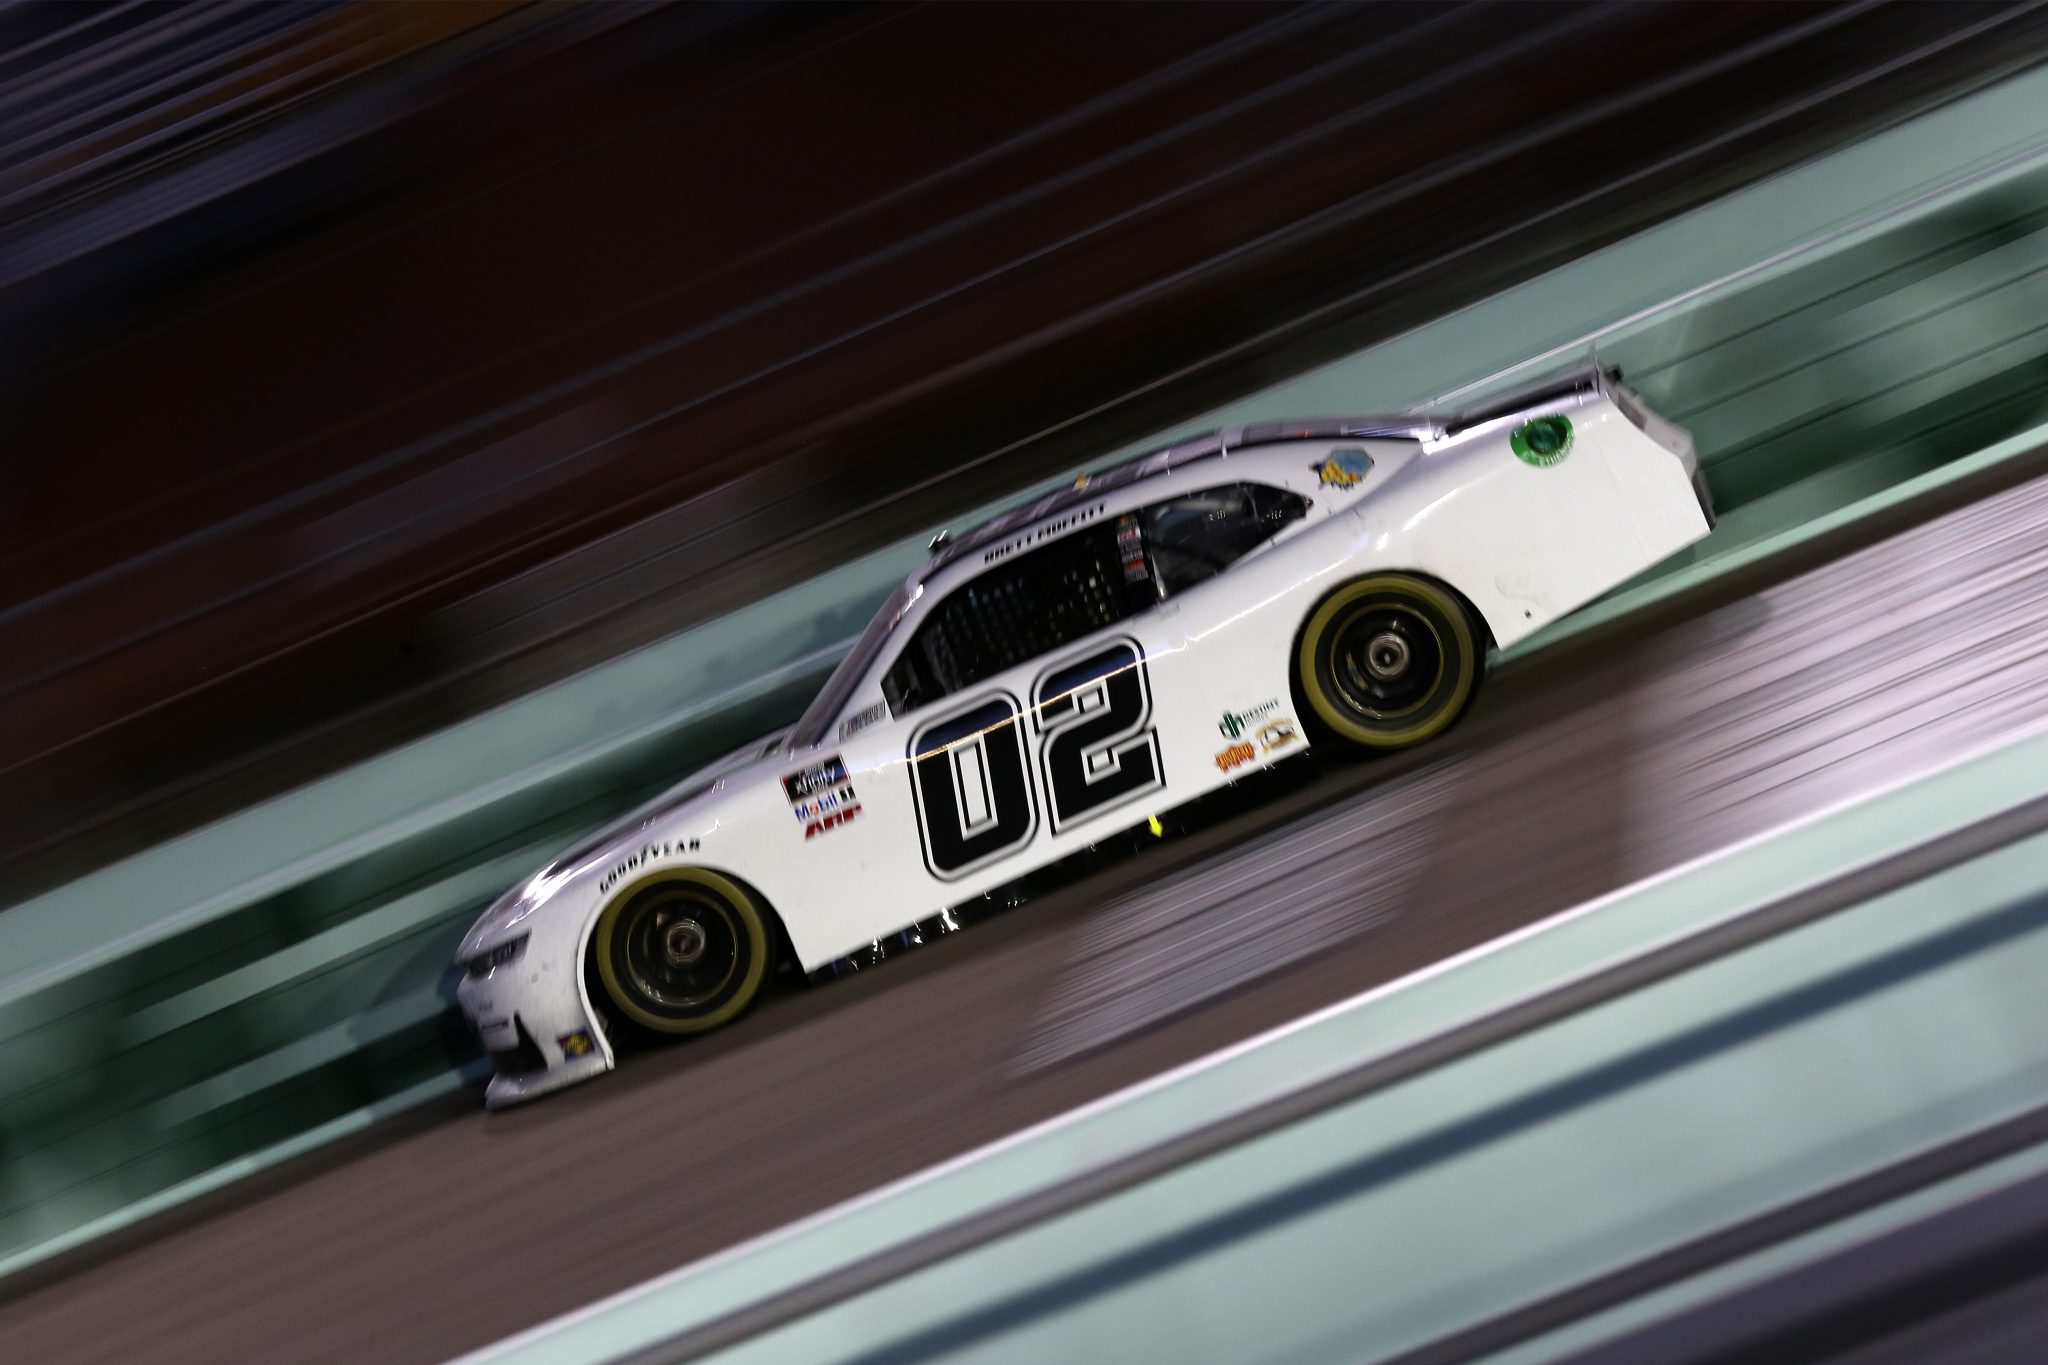 HOMESTEAD, FLORIDA - FEBRUARY 27: Brett Moffitt, driver of the #02 Chevrolet, drives during the NASCAR Xfinity Series Contender Boats 250 at Homestead-Miami Speedway on February 27, 2021 in Homestead, Florida. (Photo by Sean Gardner/Getty Images) | Getty Images